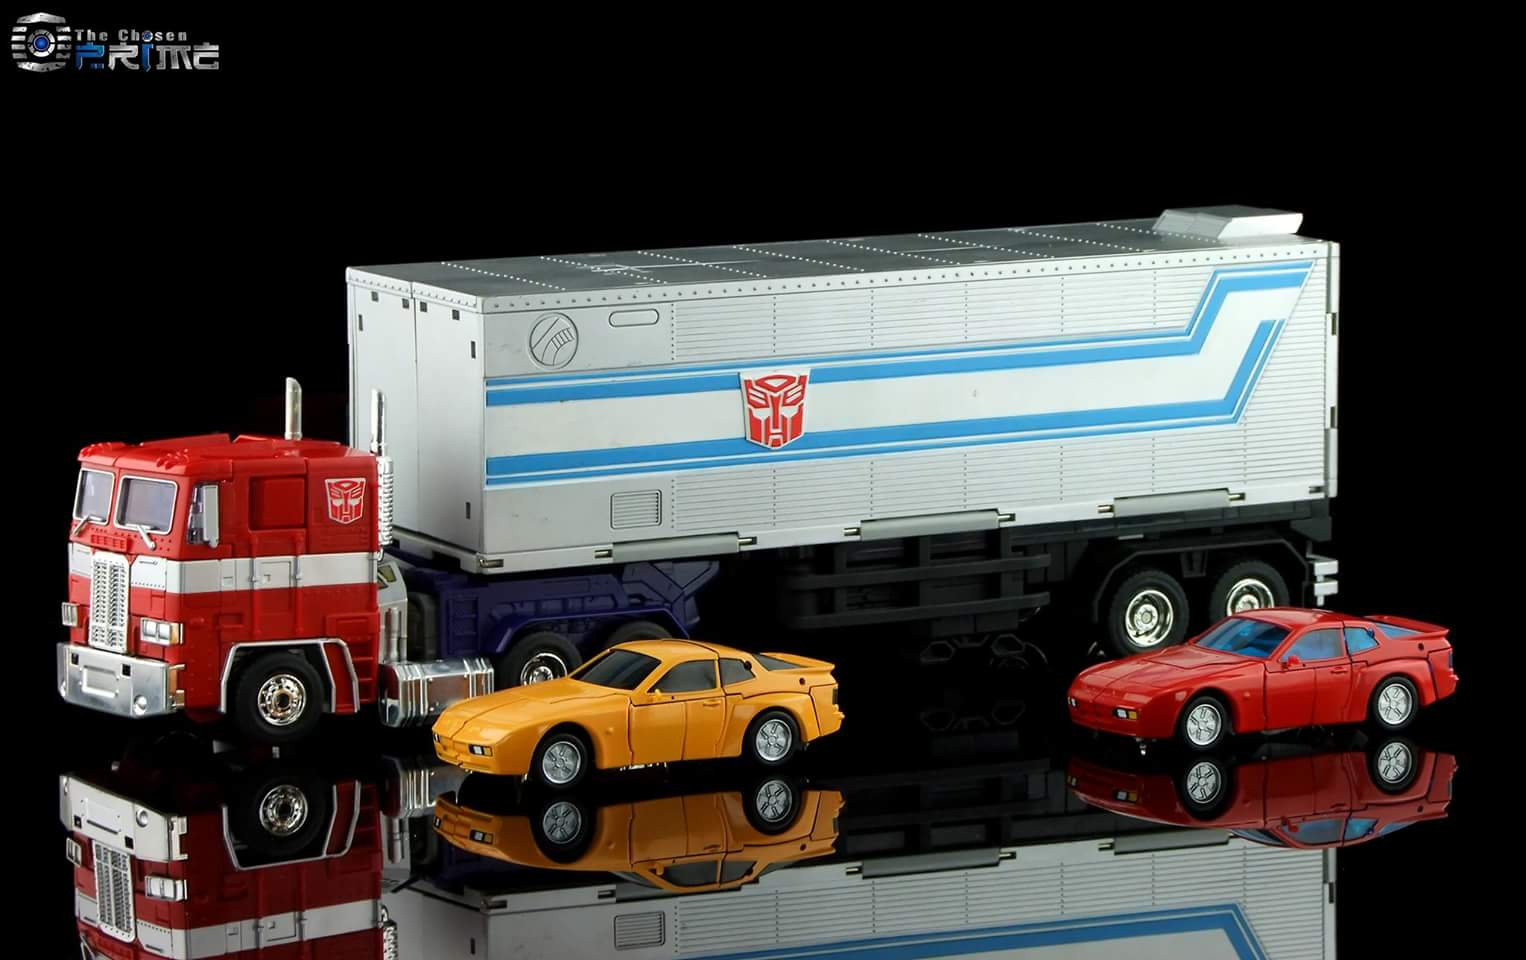 [ACE Collectables] Produit Tiers - Minibots MP - ACE-01 Tumbler (aka Cliffjumper/Matamore), ACE-02 Hiccups (aka Hubcap/Virevolto), ACE-03 Trident (aka Seaspray/Embruns) MJI8TTOQ